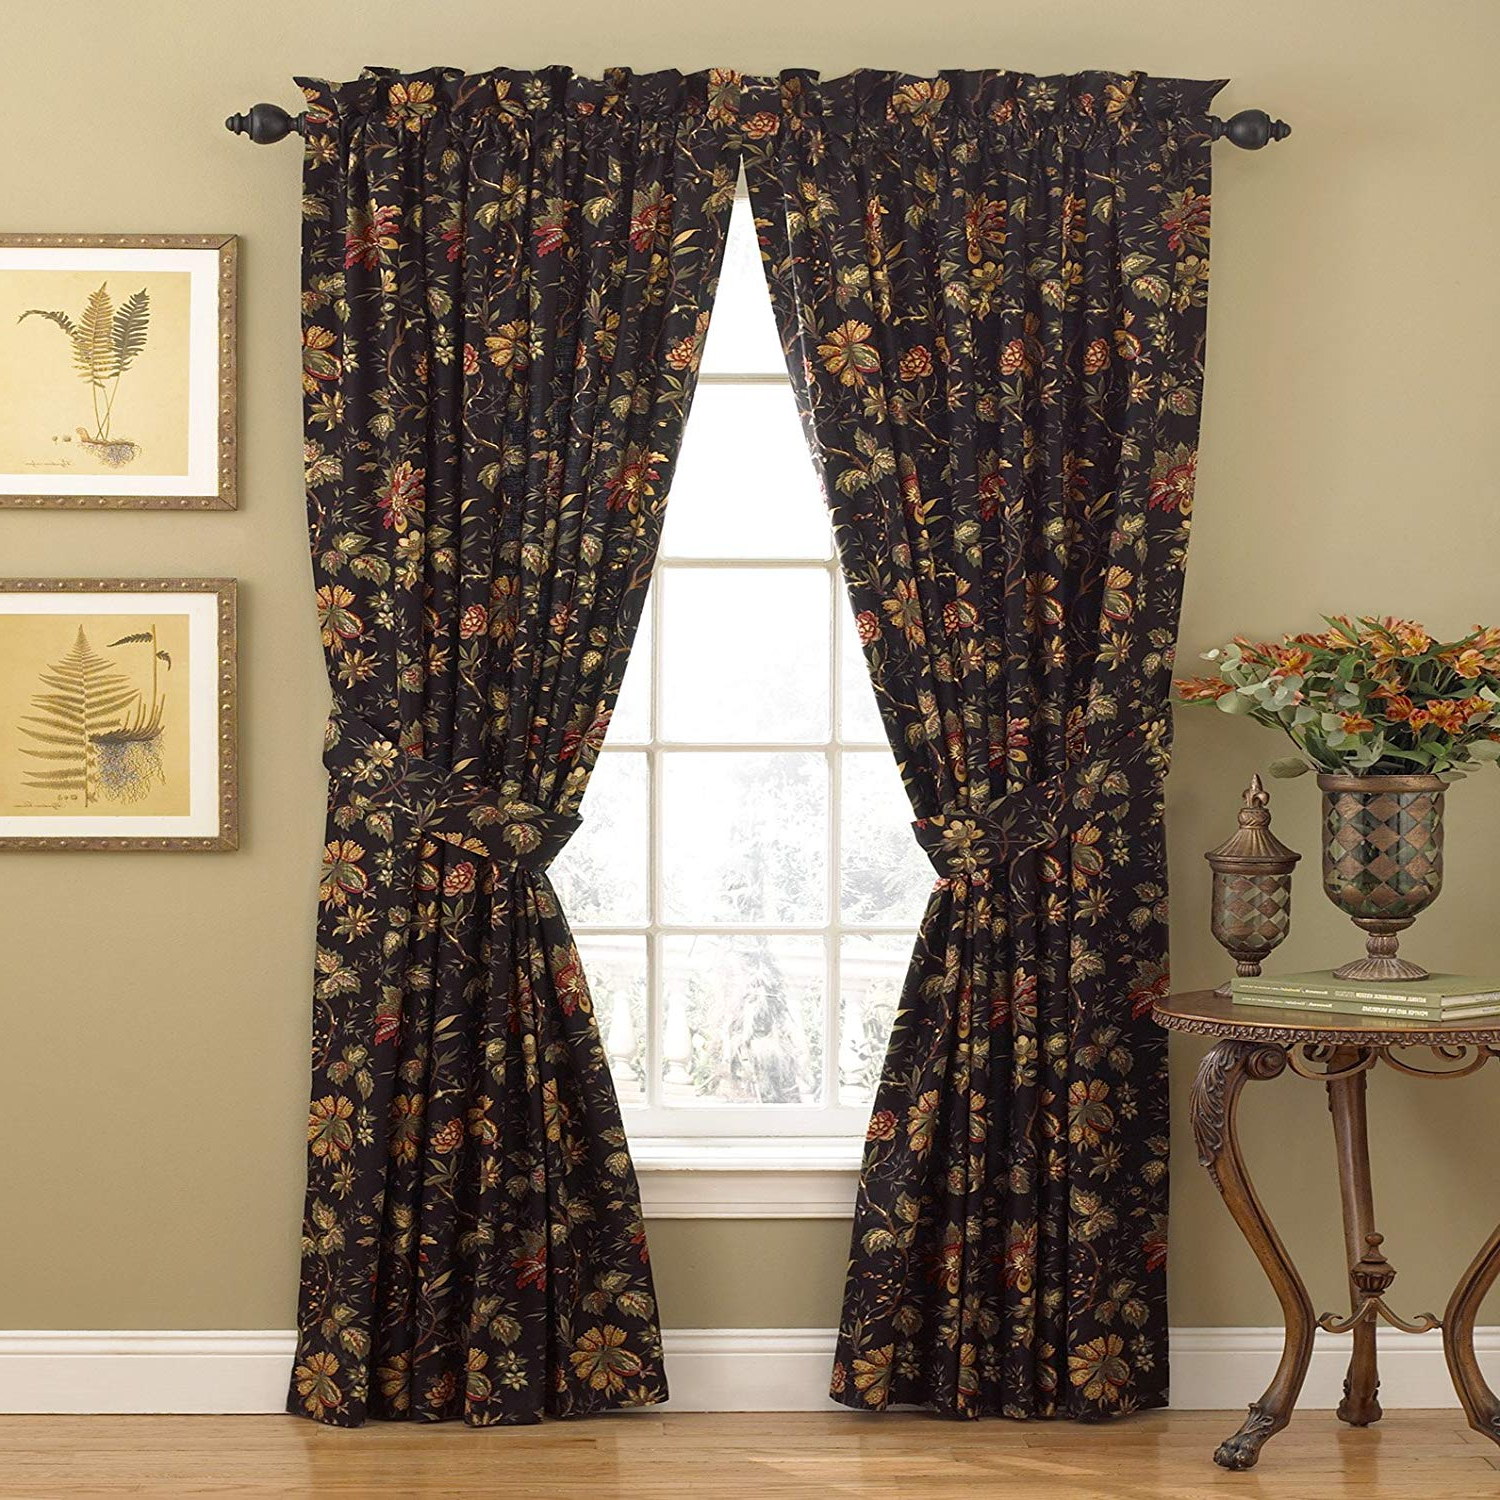 "Waverly Felicite Curtain Tiers Regarding Famous Waverly Curtains For Bedroom – Felicite 50"" X 84"" Decorative Single Panel Rod Pocket Window Treatment Privacy Curtains For Living Room, Noir (View 6 of 20)"